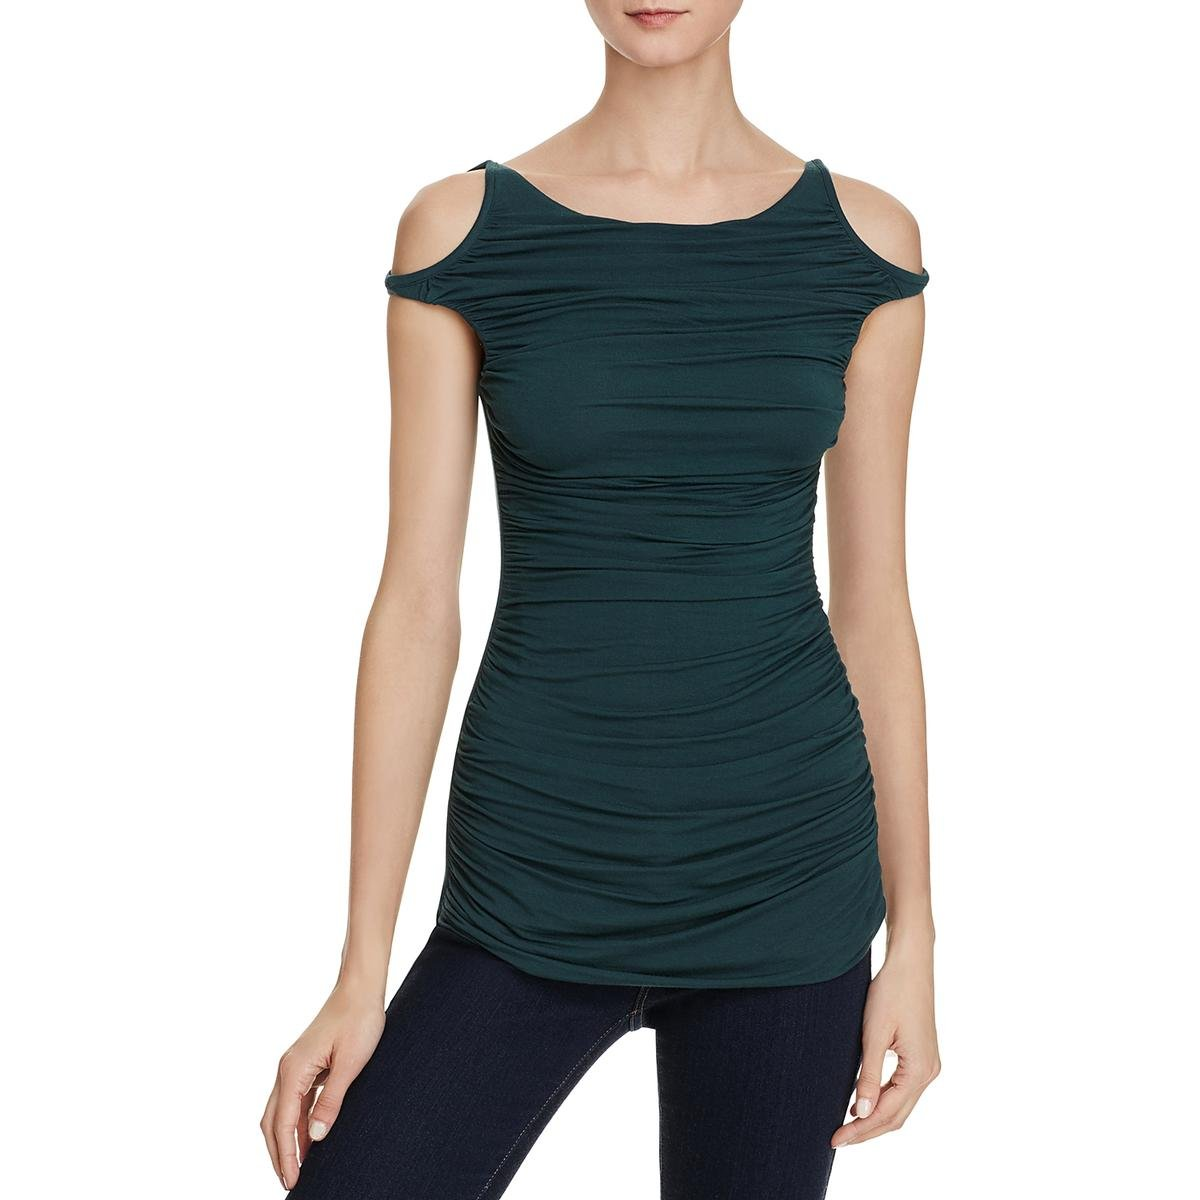 Bailey 44 Womens Charming Open Shoulder Drapey Casual Top Green M by Bailey 44 (Image #1)